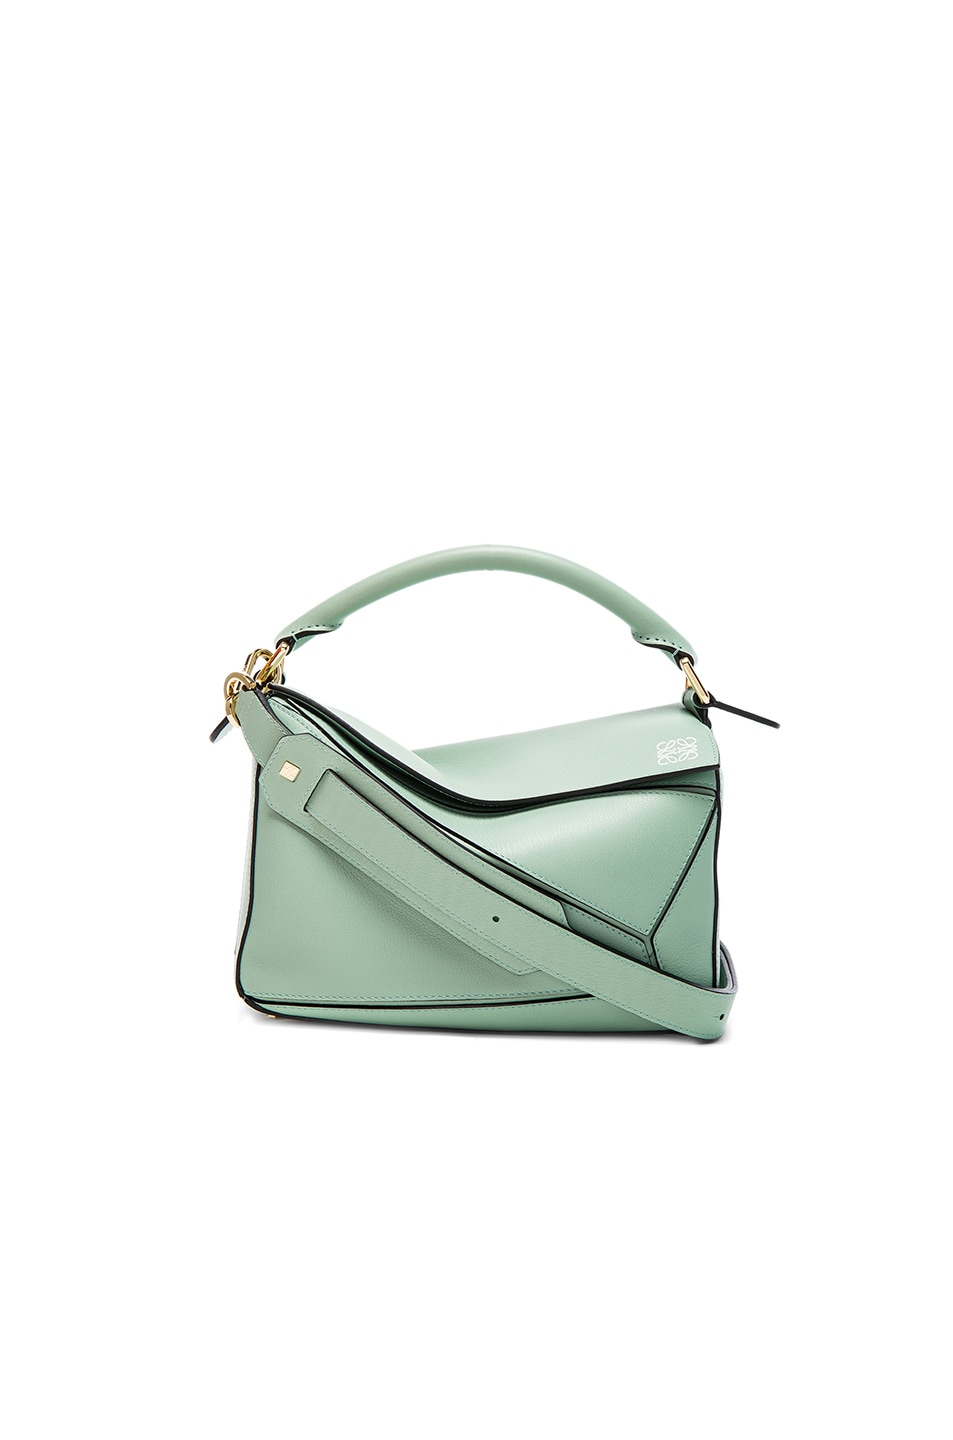 Image 1 of Loewe Puzzle Small Bag in Sea Water Green